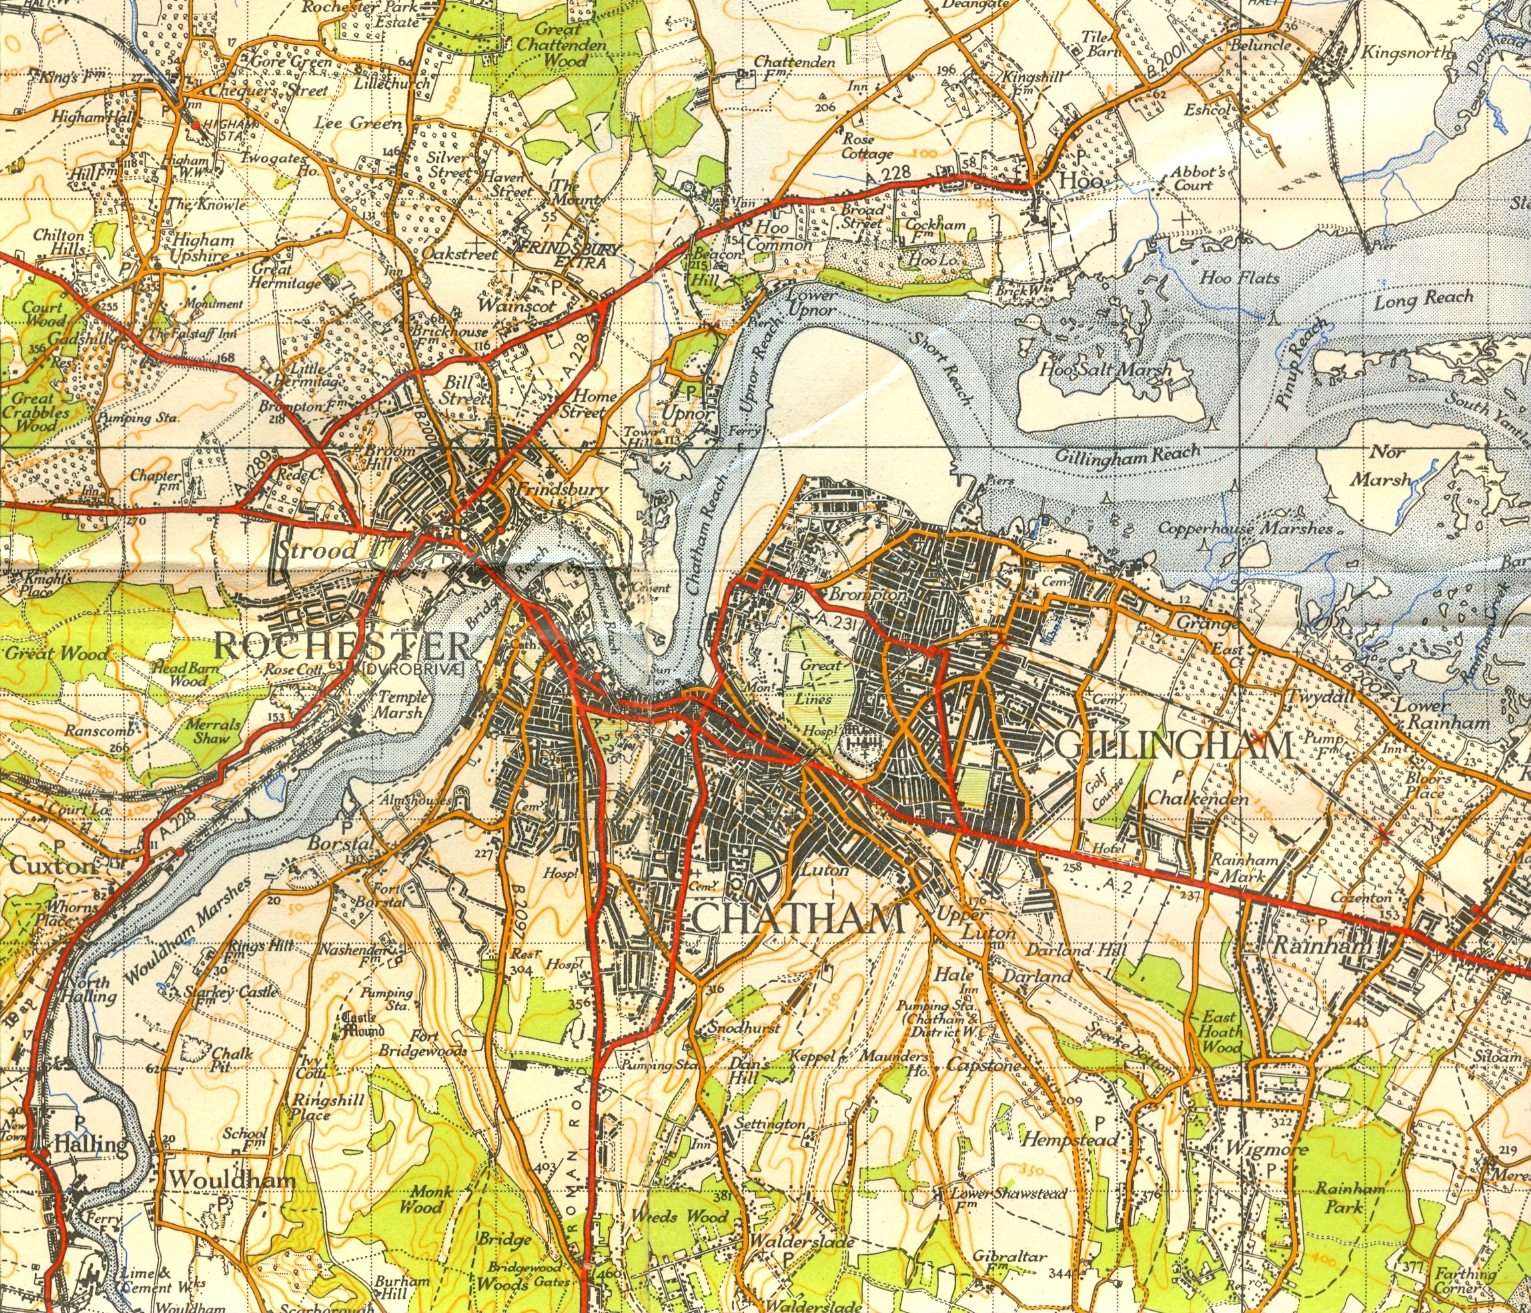 This map dates from 1940 - the naval Dockyard is blanked out.